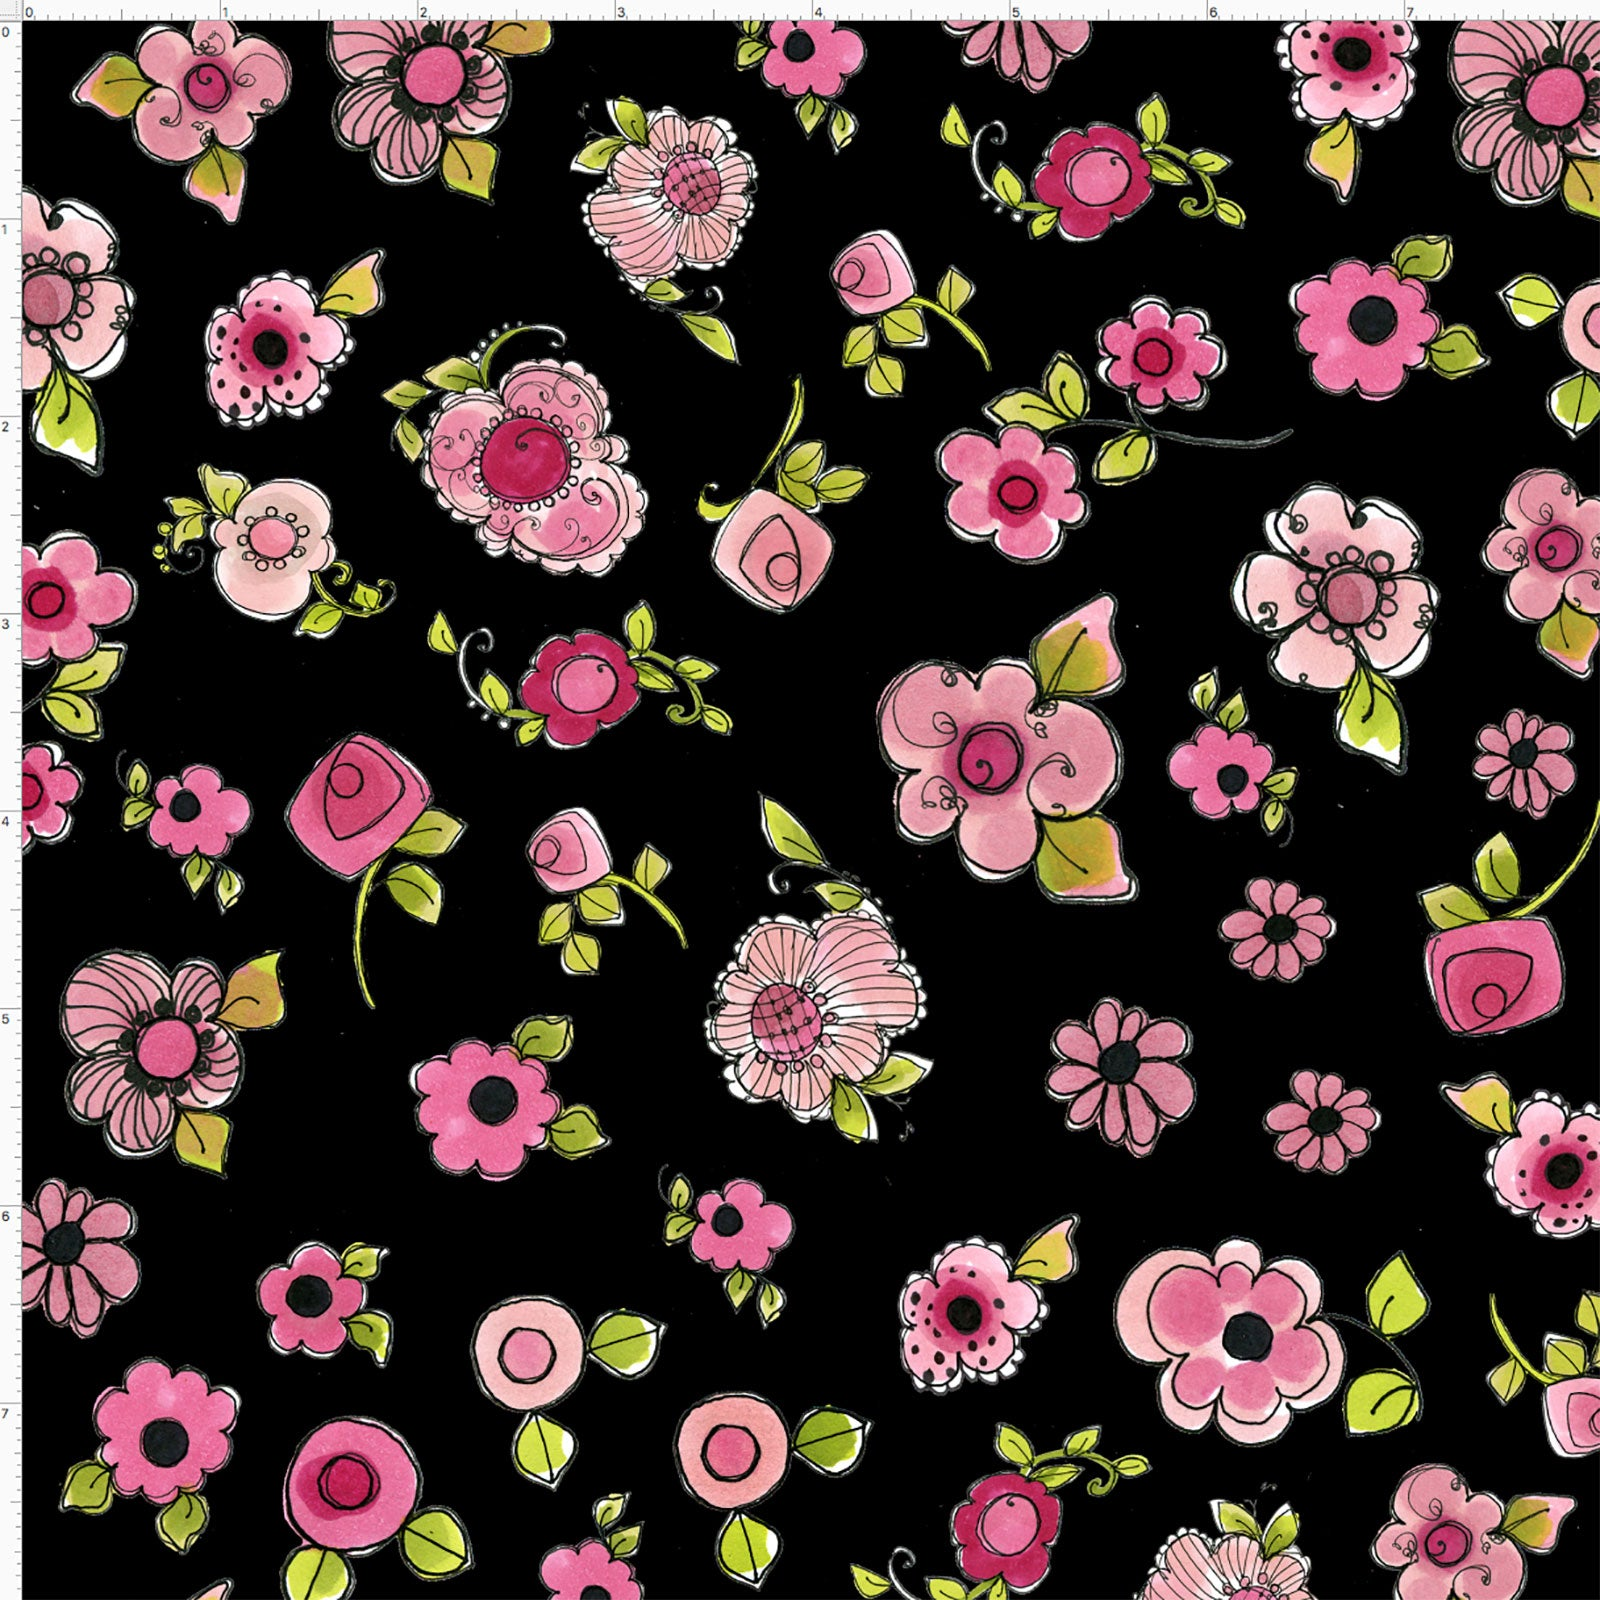 Parlor Posies Black Fabric